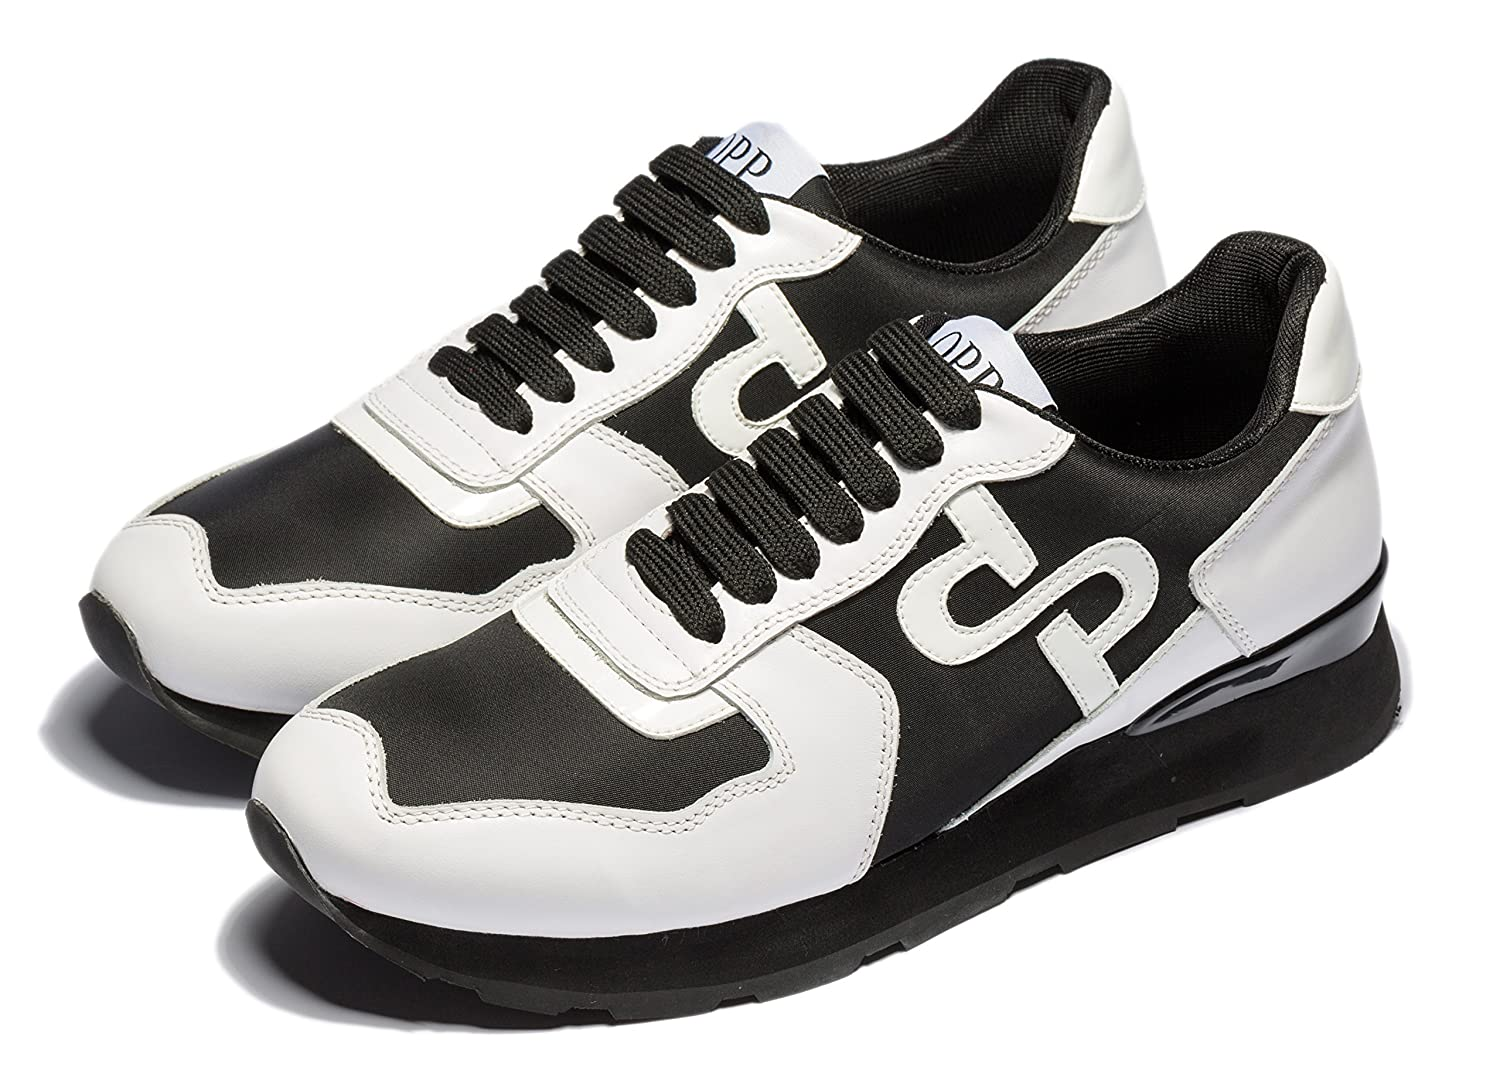 OPP Men's Fashion Lights Leather Sports Sneaker Lace-up Rubber Soft Sole Casual Shoes B07C3TWJBT 8  M US|Black